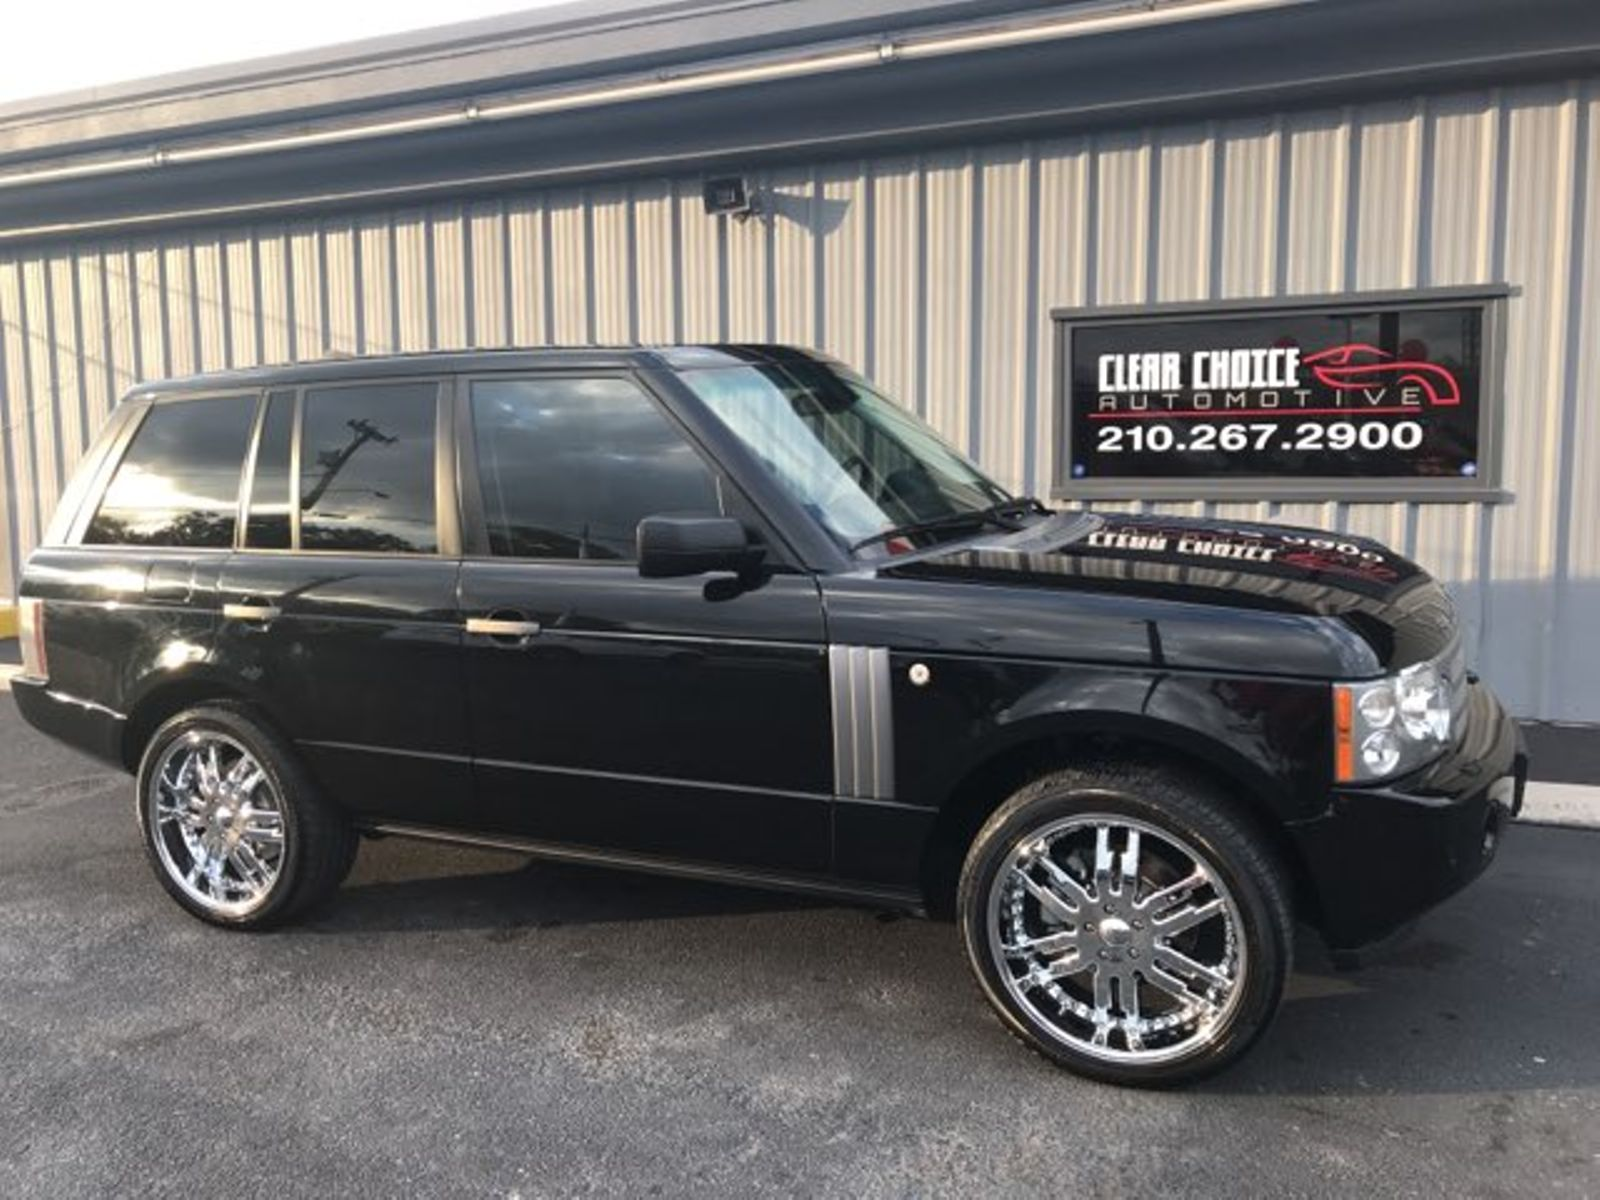 2008 Land Rover Range Rover HSE city TX Clear Choice Automotive